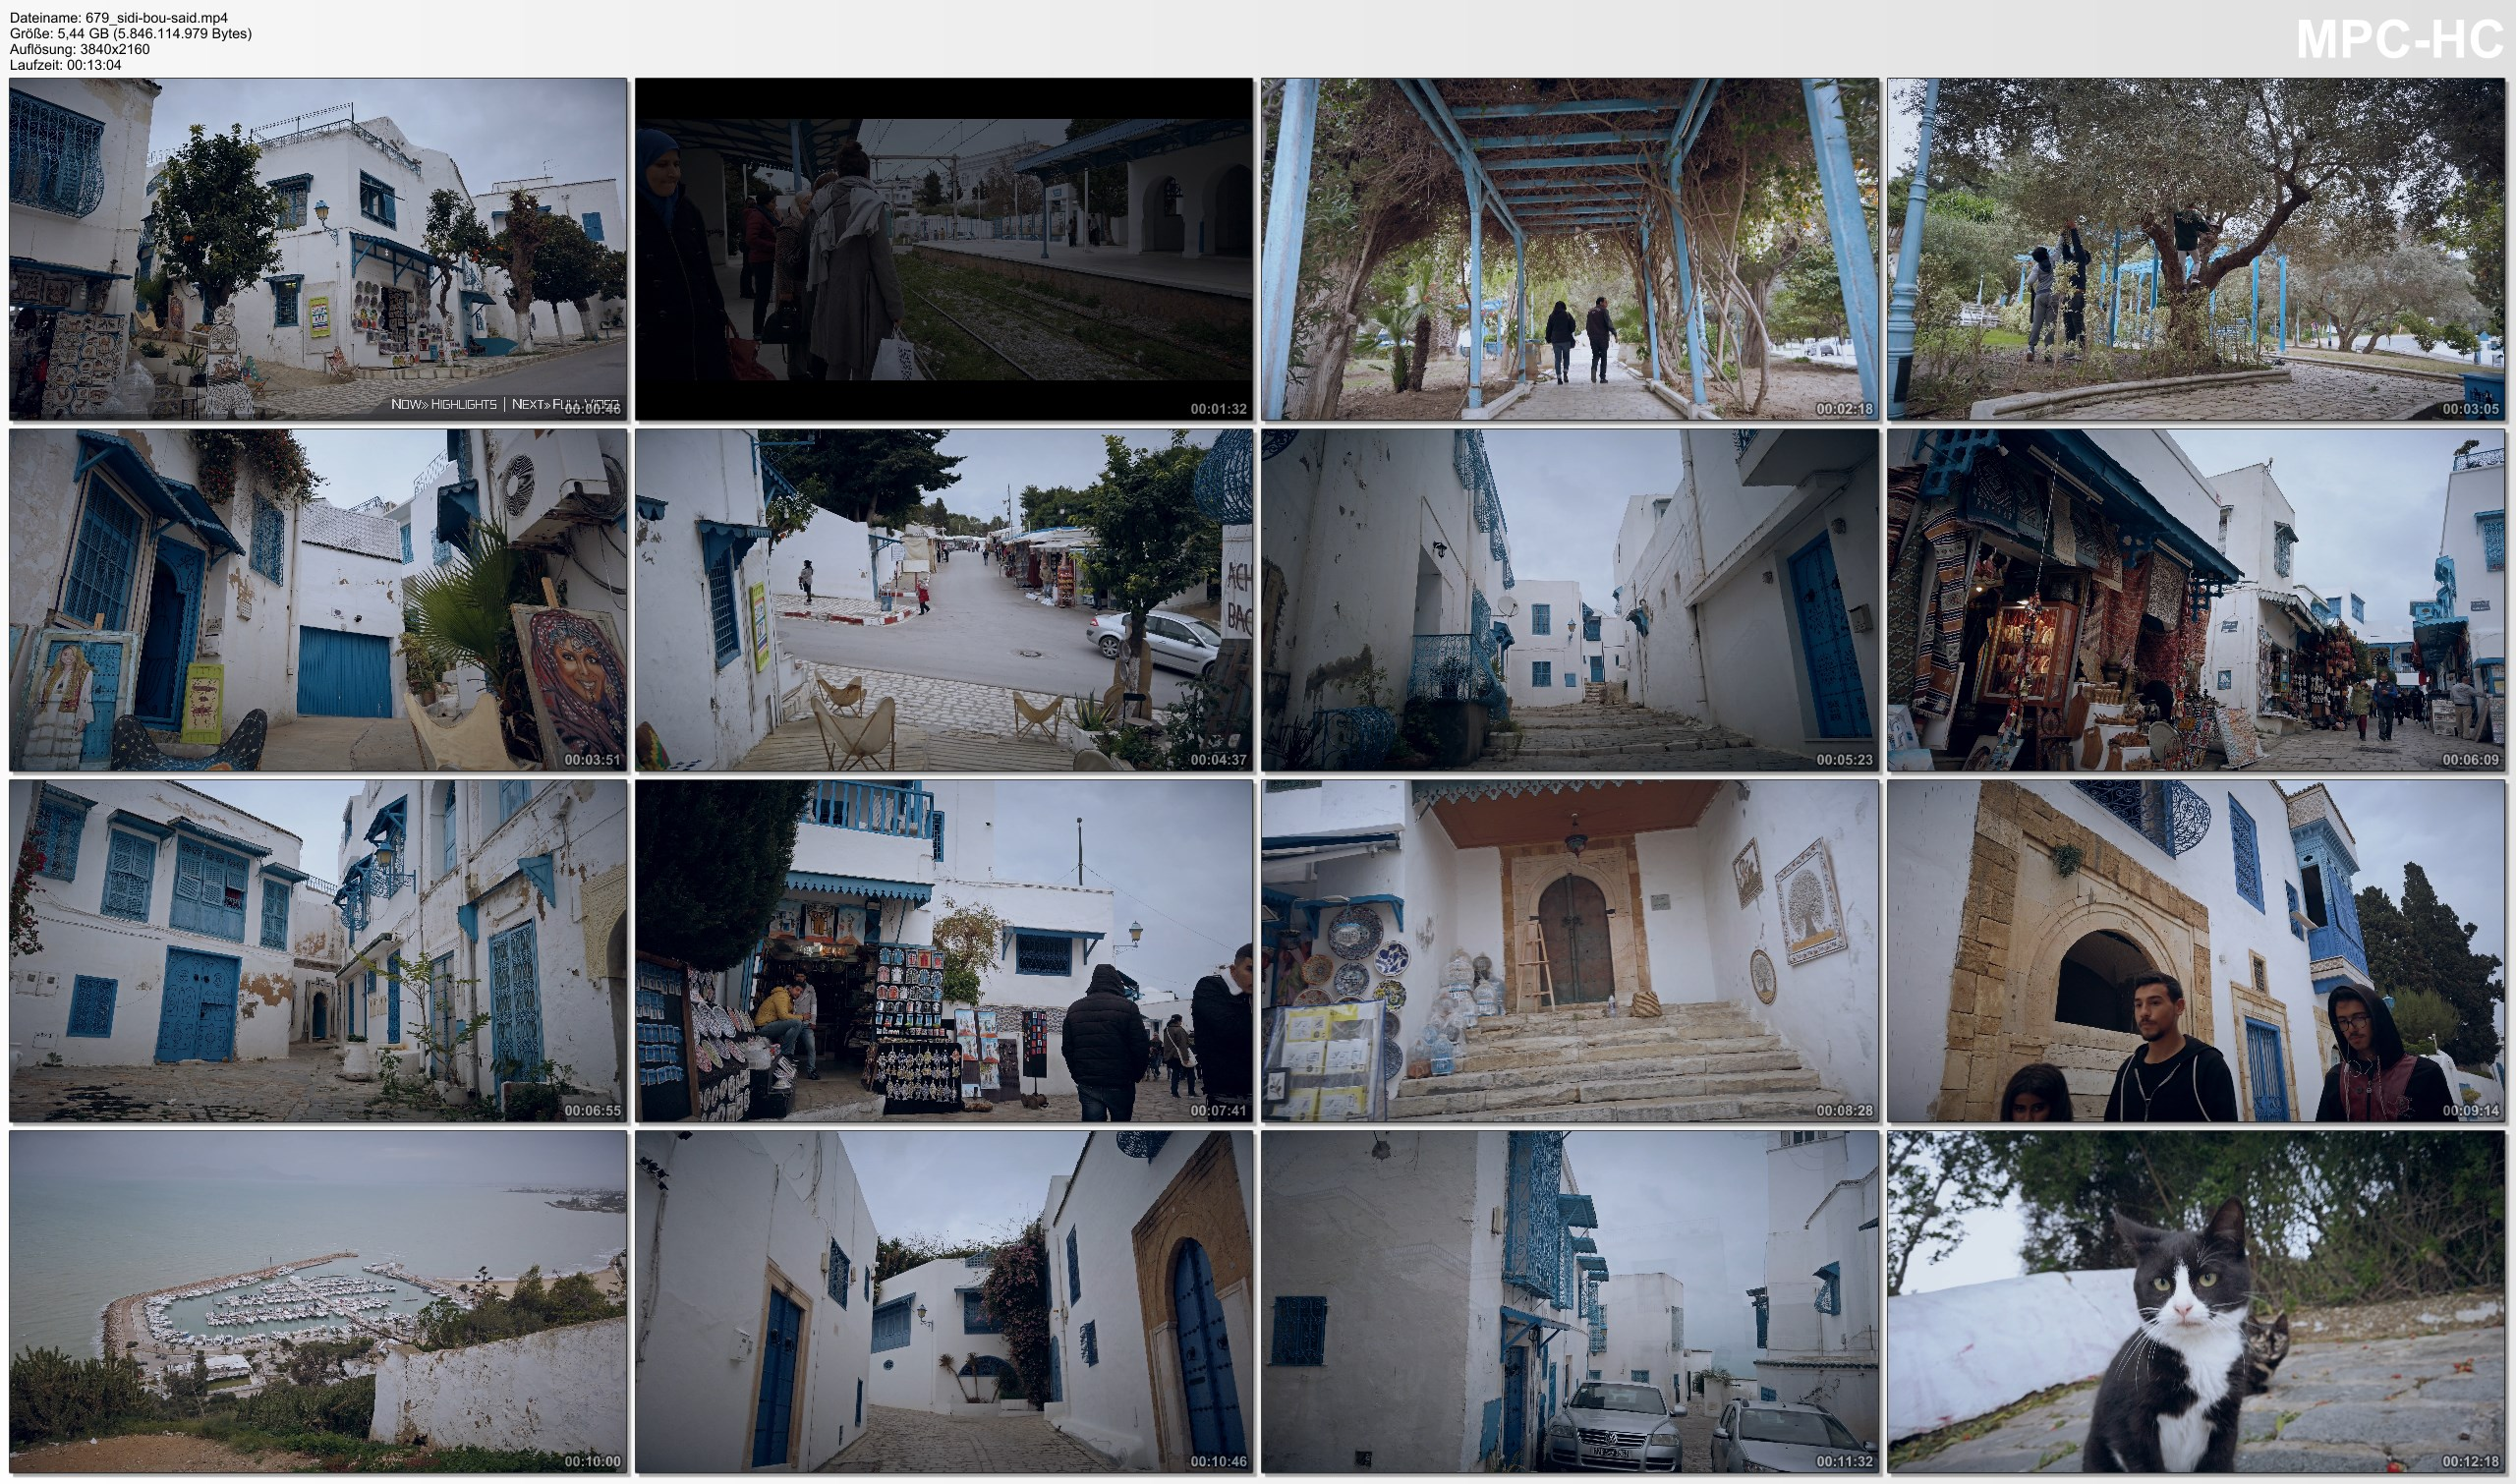 Pictures from Video 【4K】Virtual Walking Tour | Sightseeing in Sidi Bou Said - TUNISIA 2020 | UltraHD Travel Video